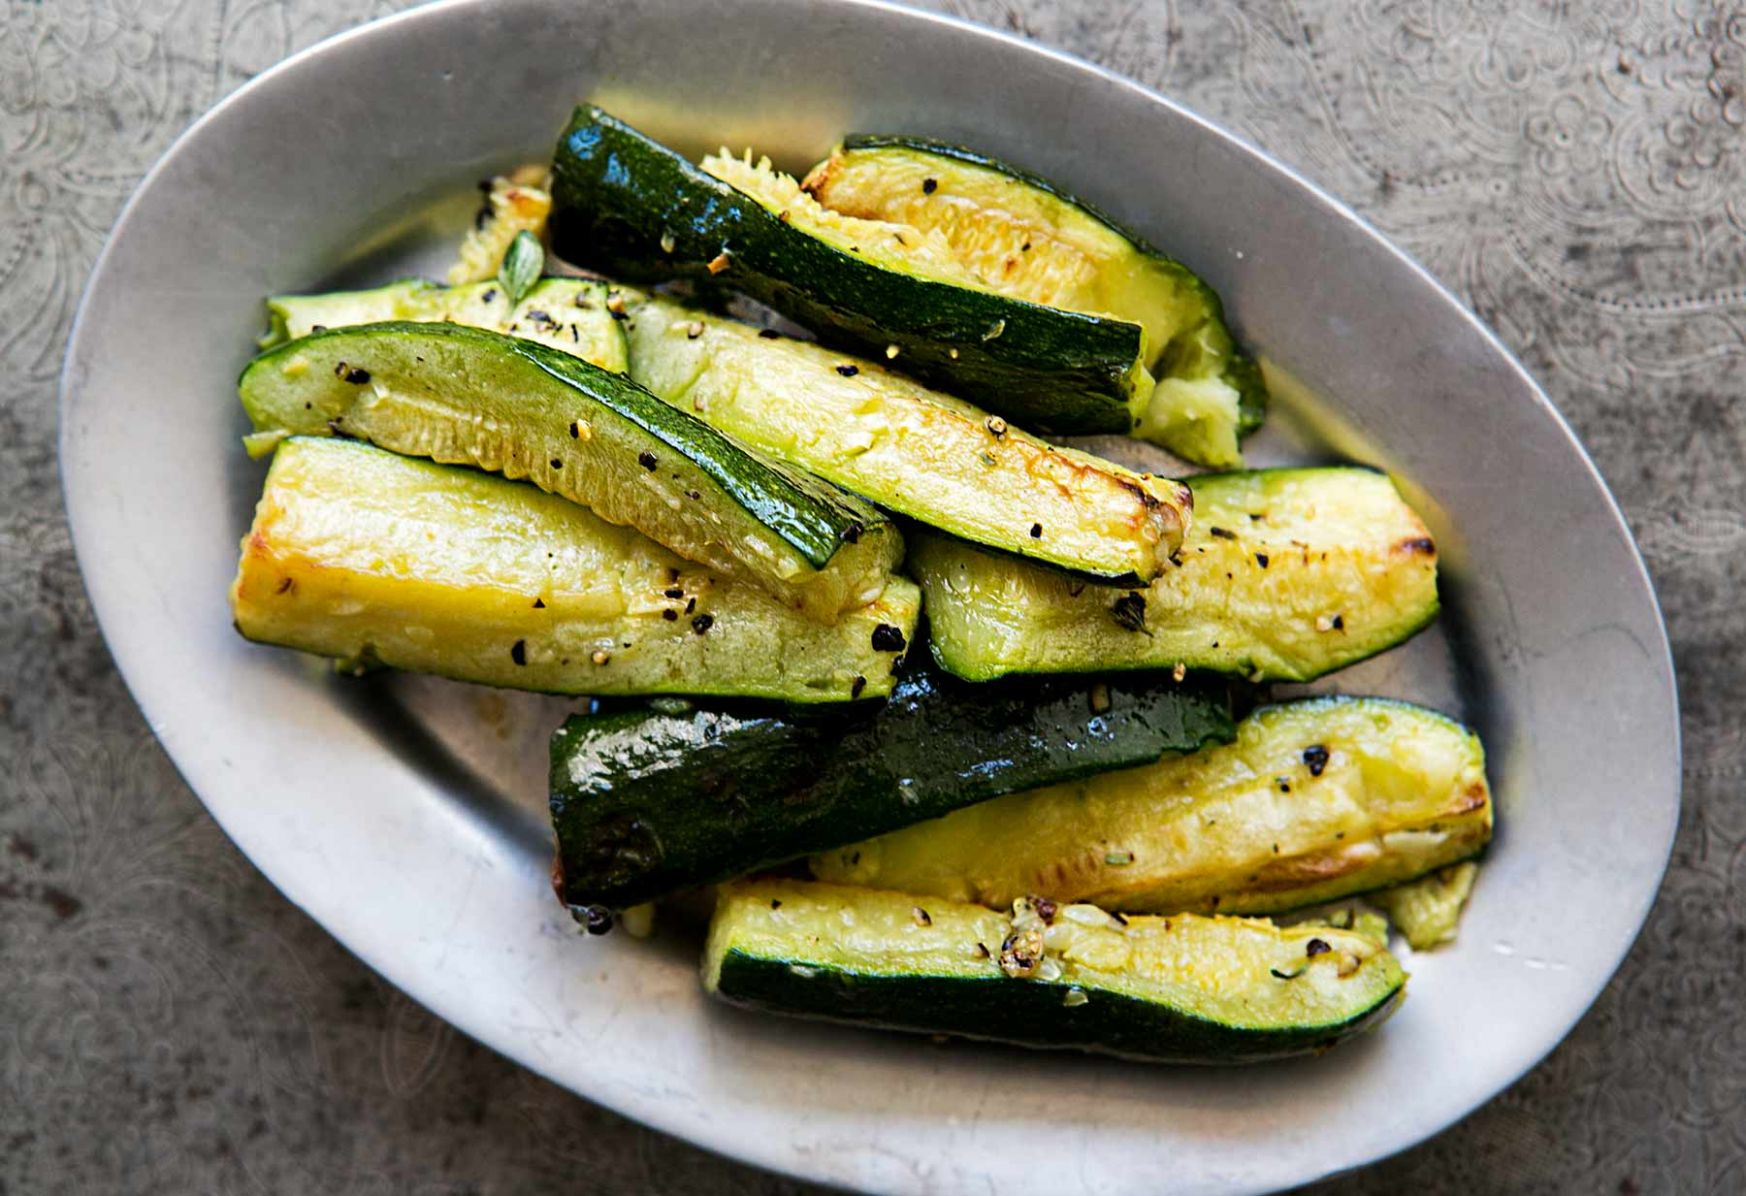 Roasted Zucchini with Garlic - Recipes For Cooking Zucchini